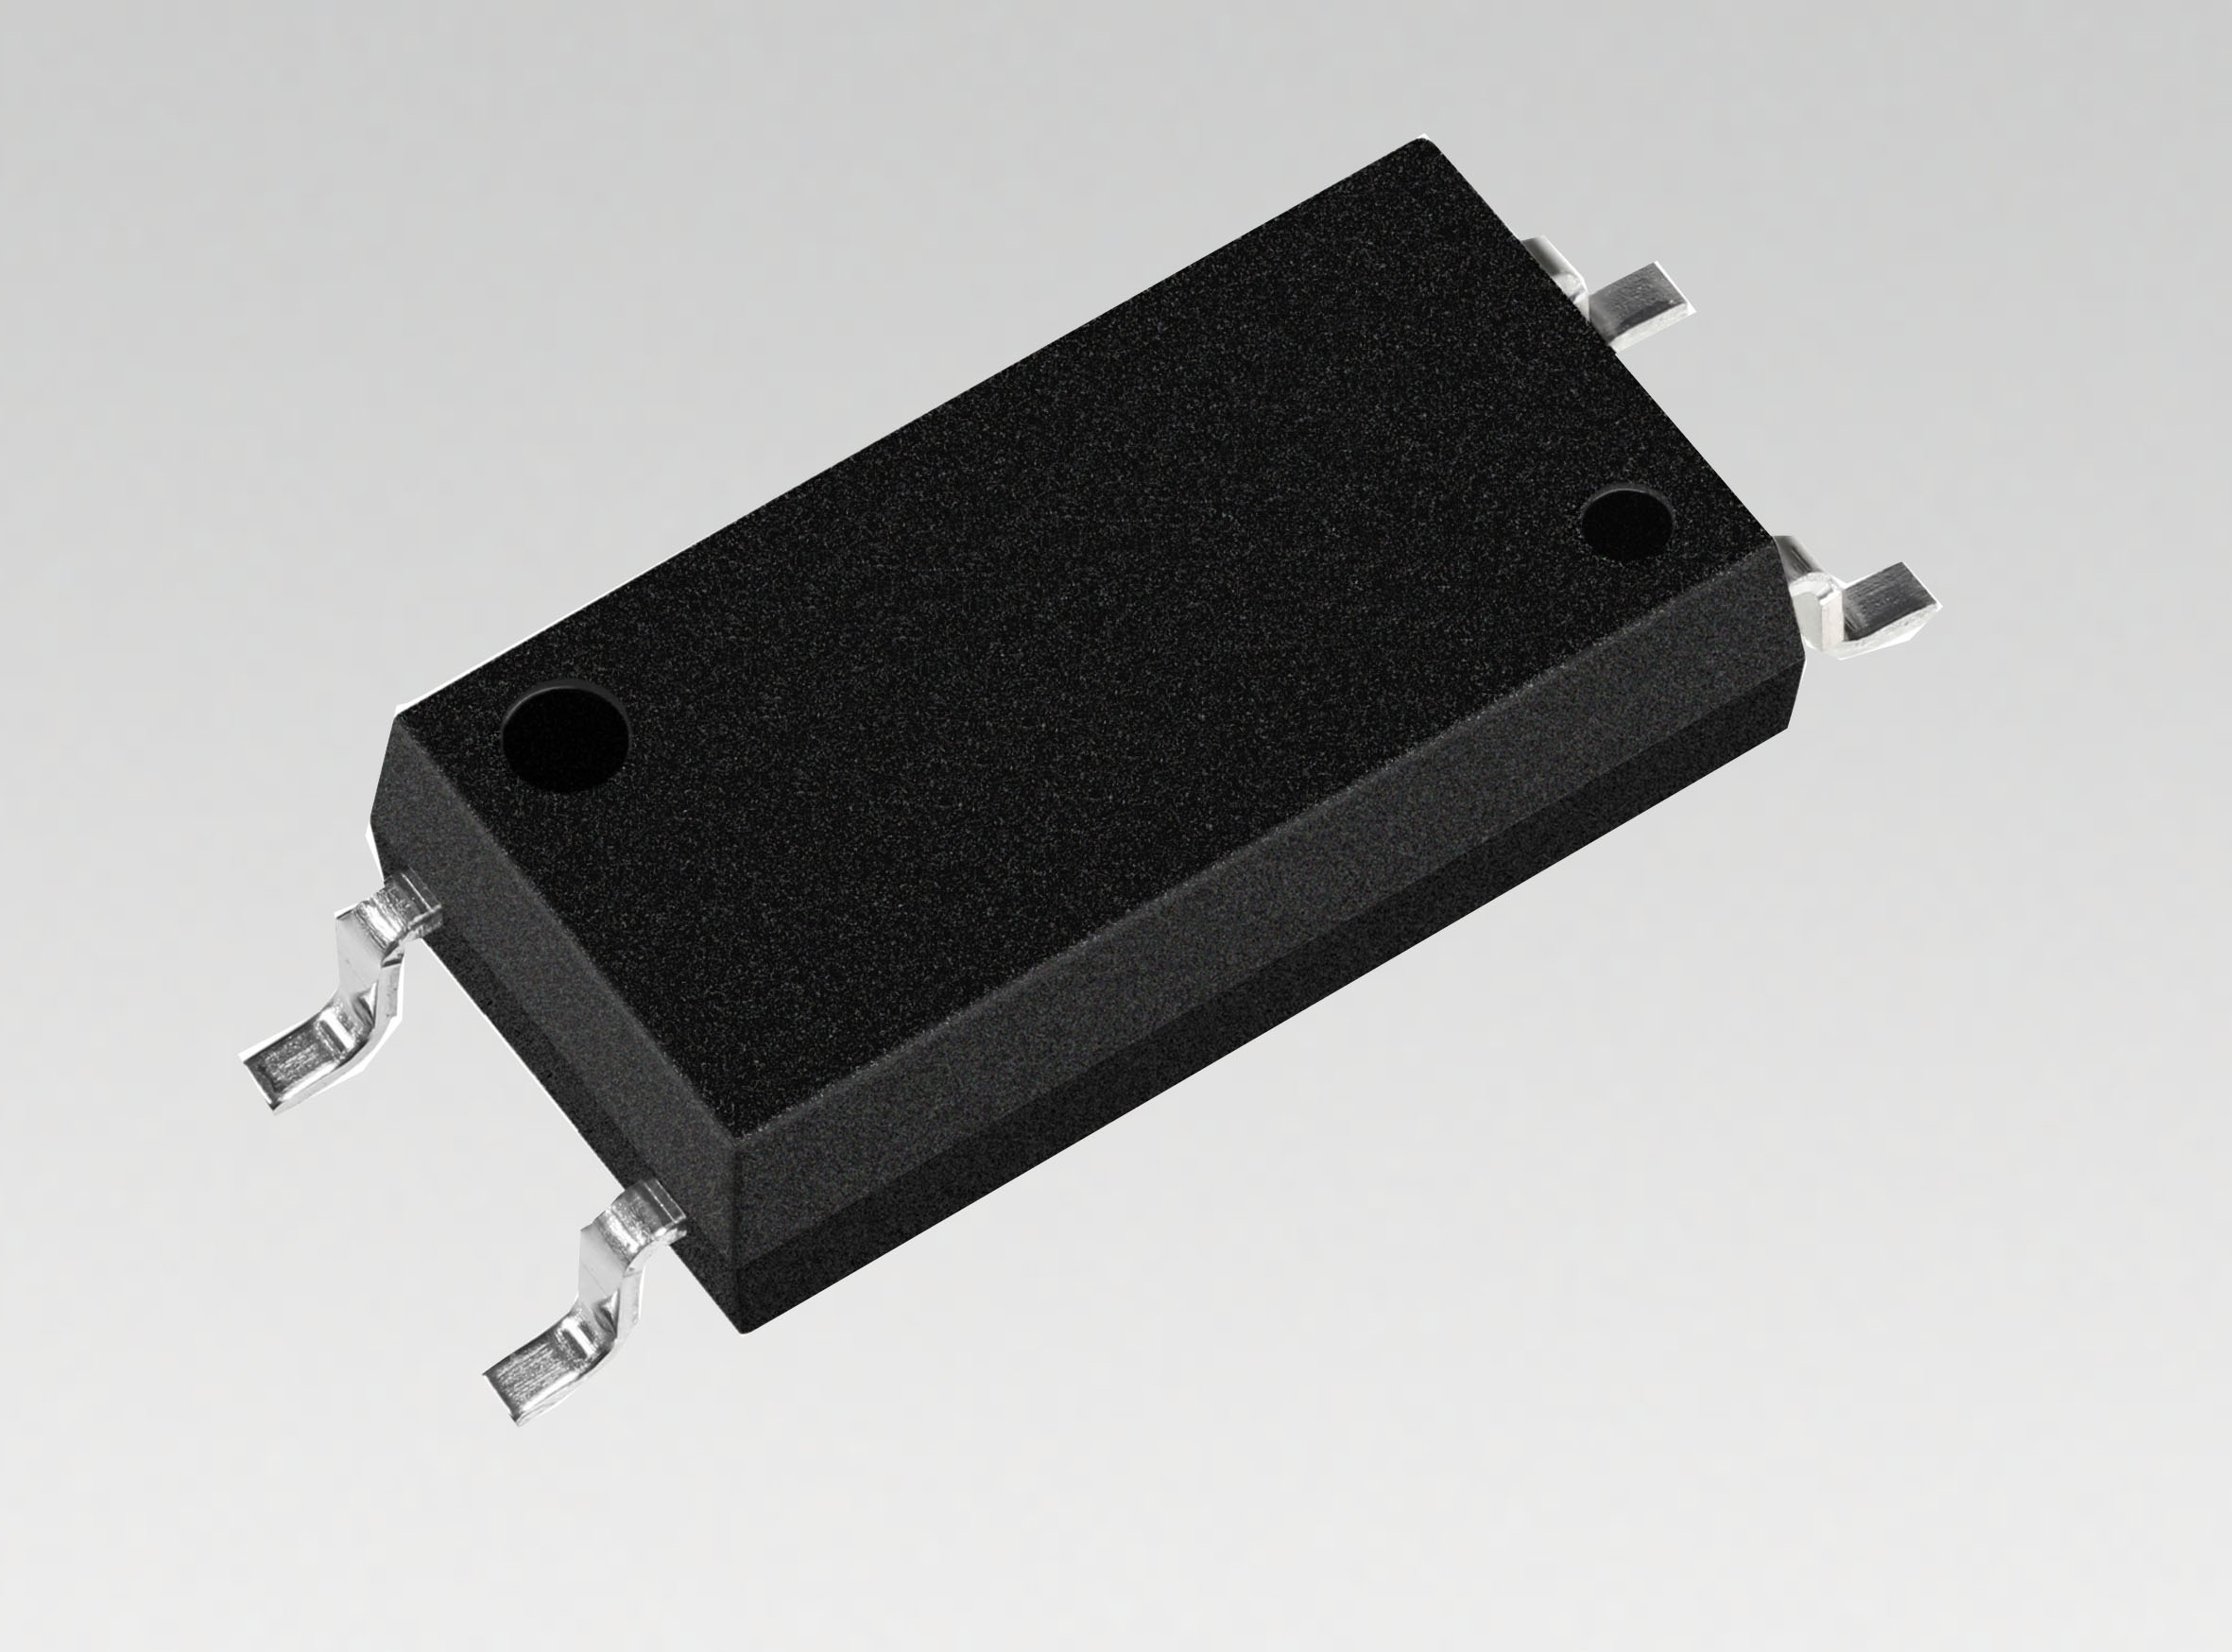 """Toshiba: Low-height Package Transistor Output Photocoupler """"TLP385"""" (Photo: Business Wire)"""